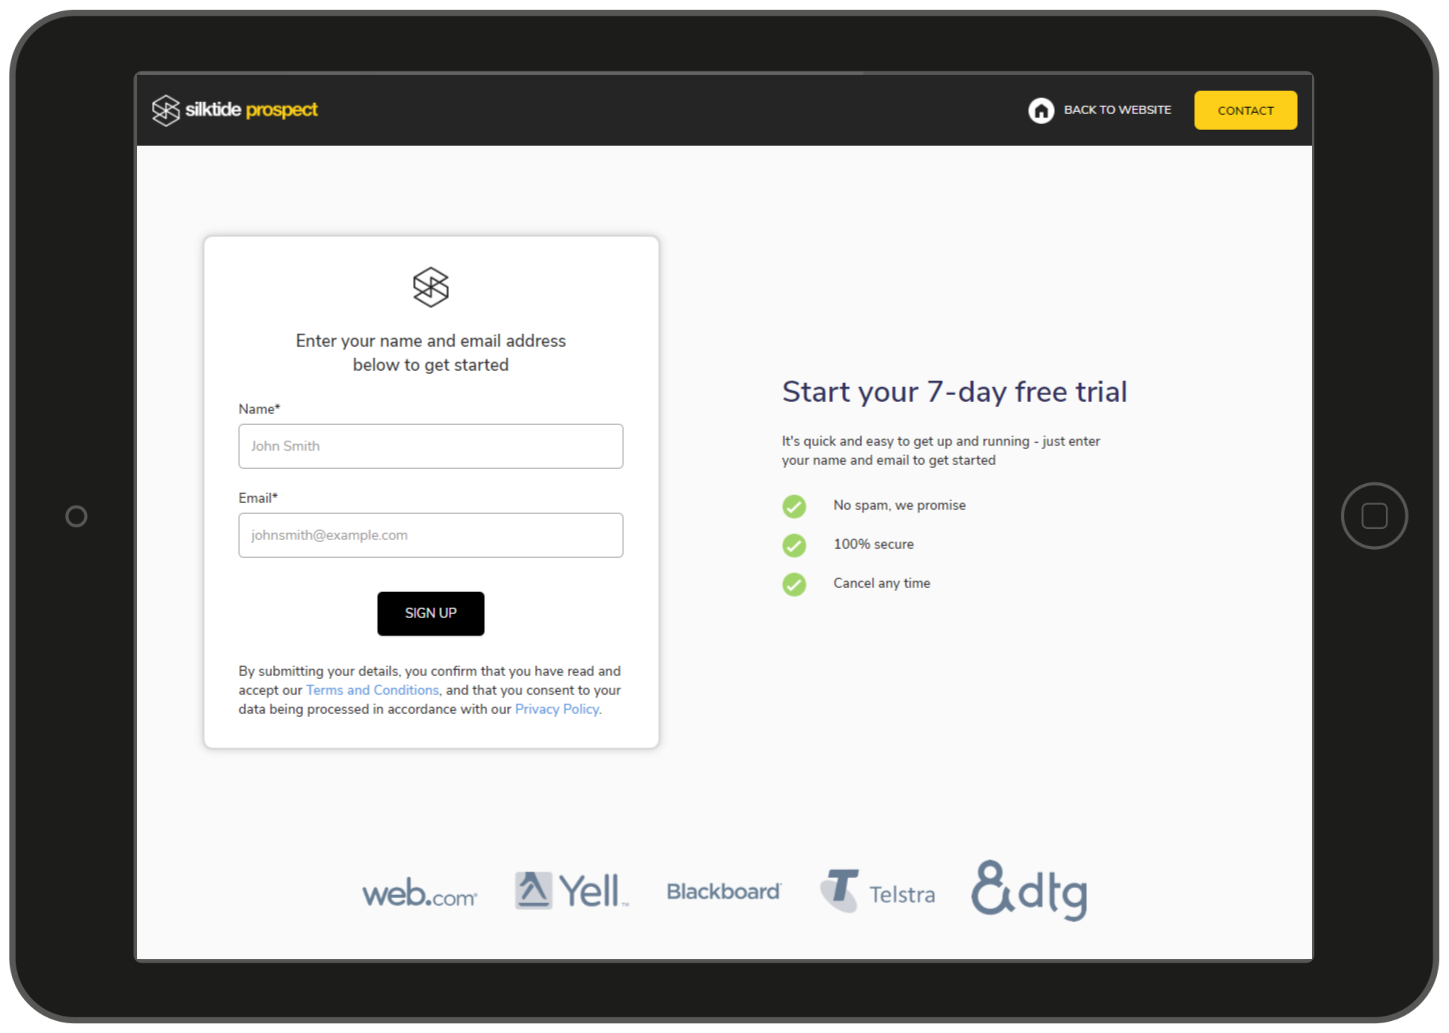 Sign up for a free 7-day trial of Insites